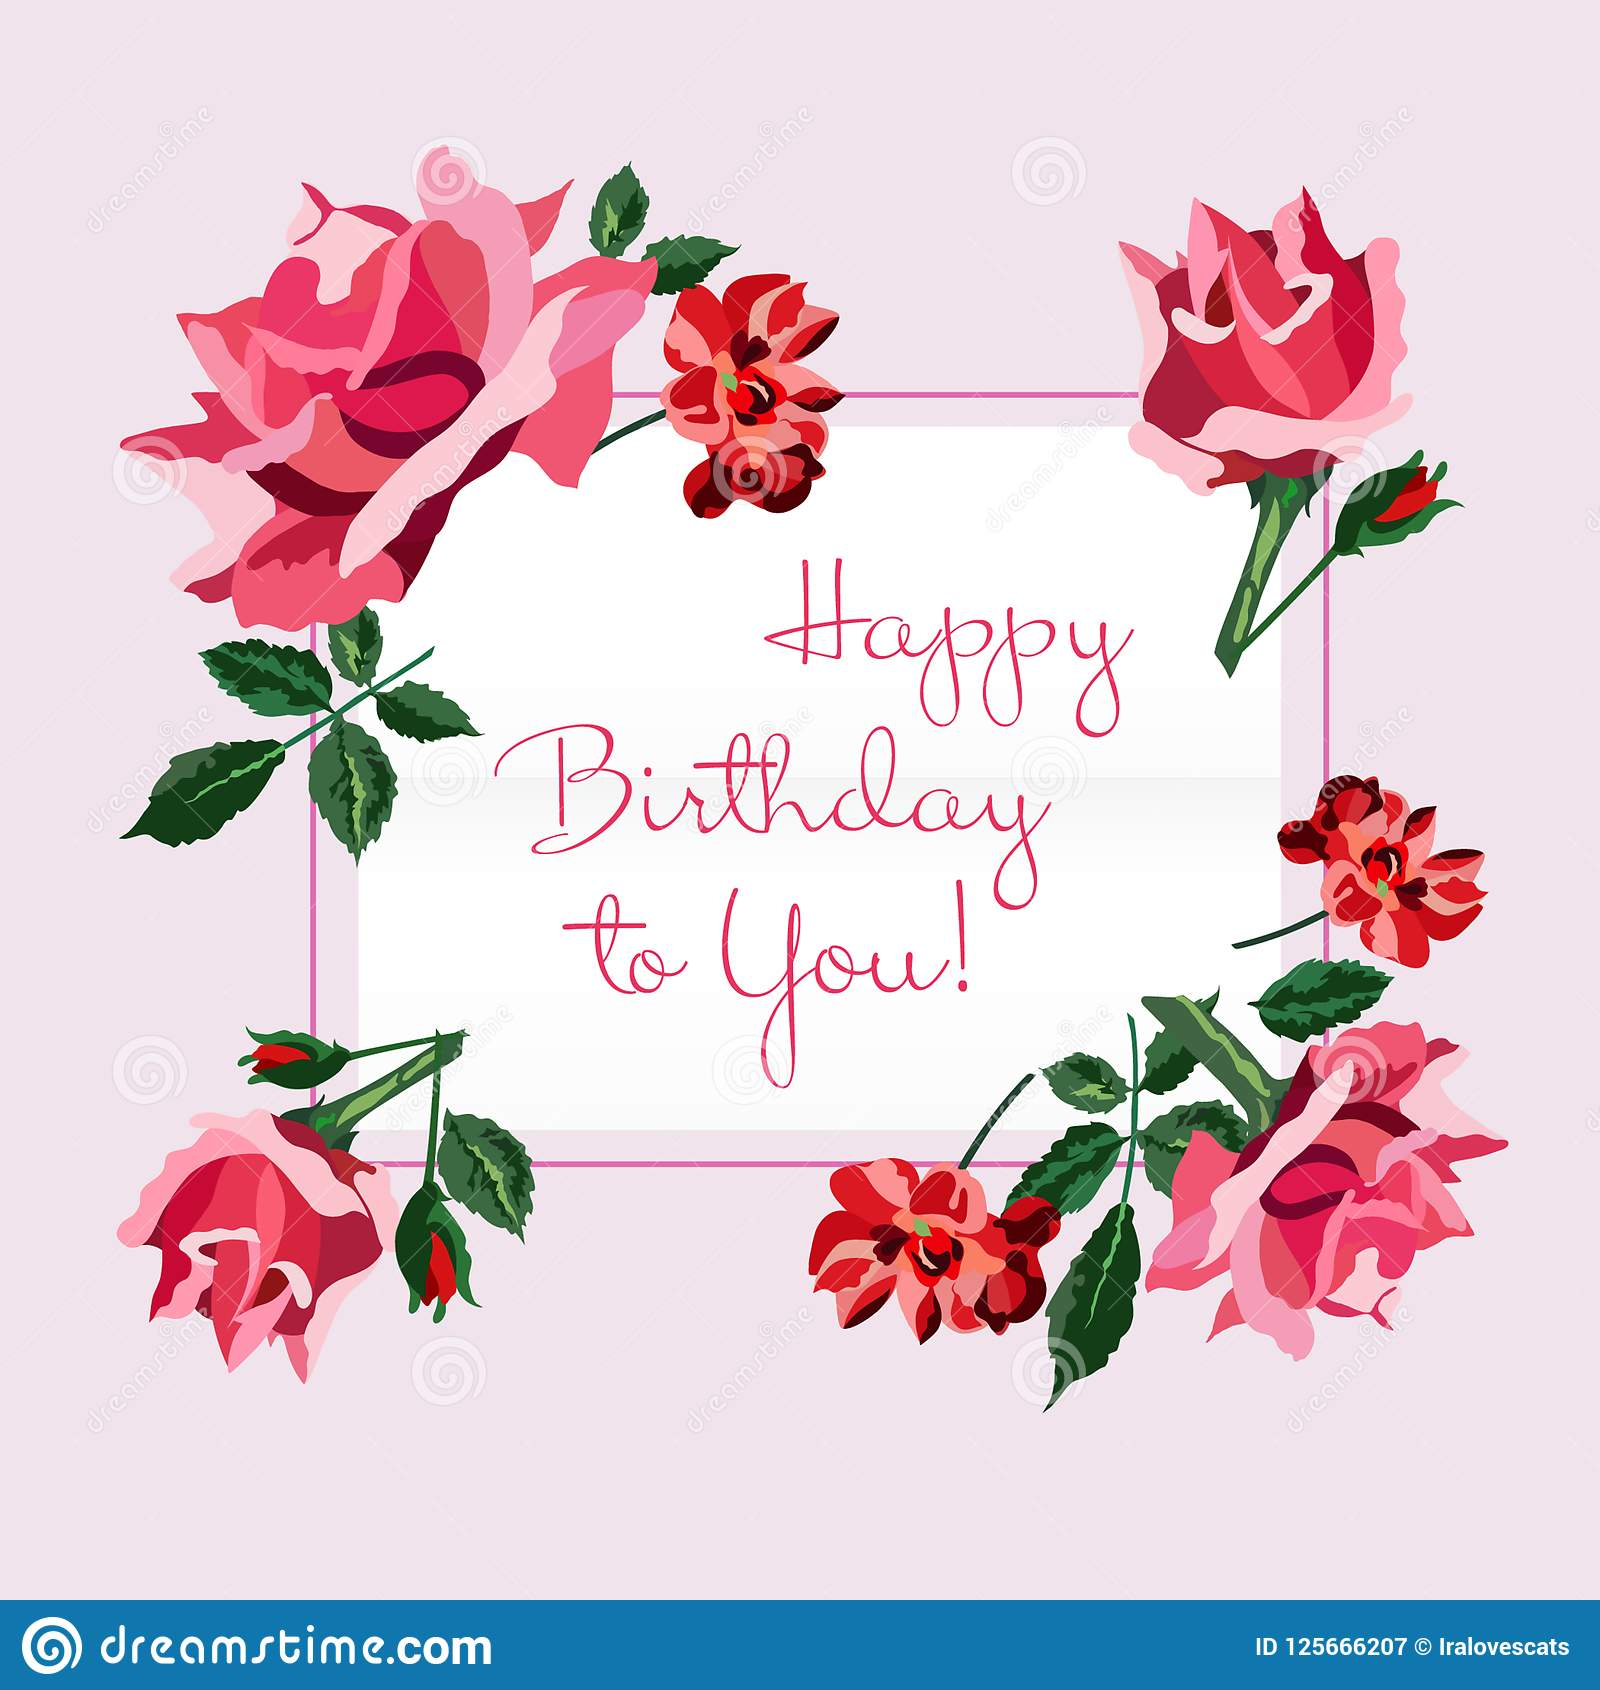 Pastel birthday wishes pink roses pictures picturesboss happy birthday present greeting card happy birthday greeting card pink red roses rgeen leaves light pastel izmirmasajfo